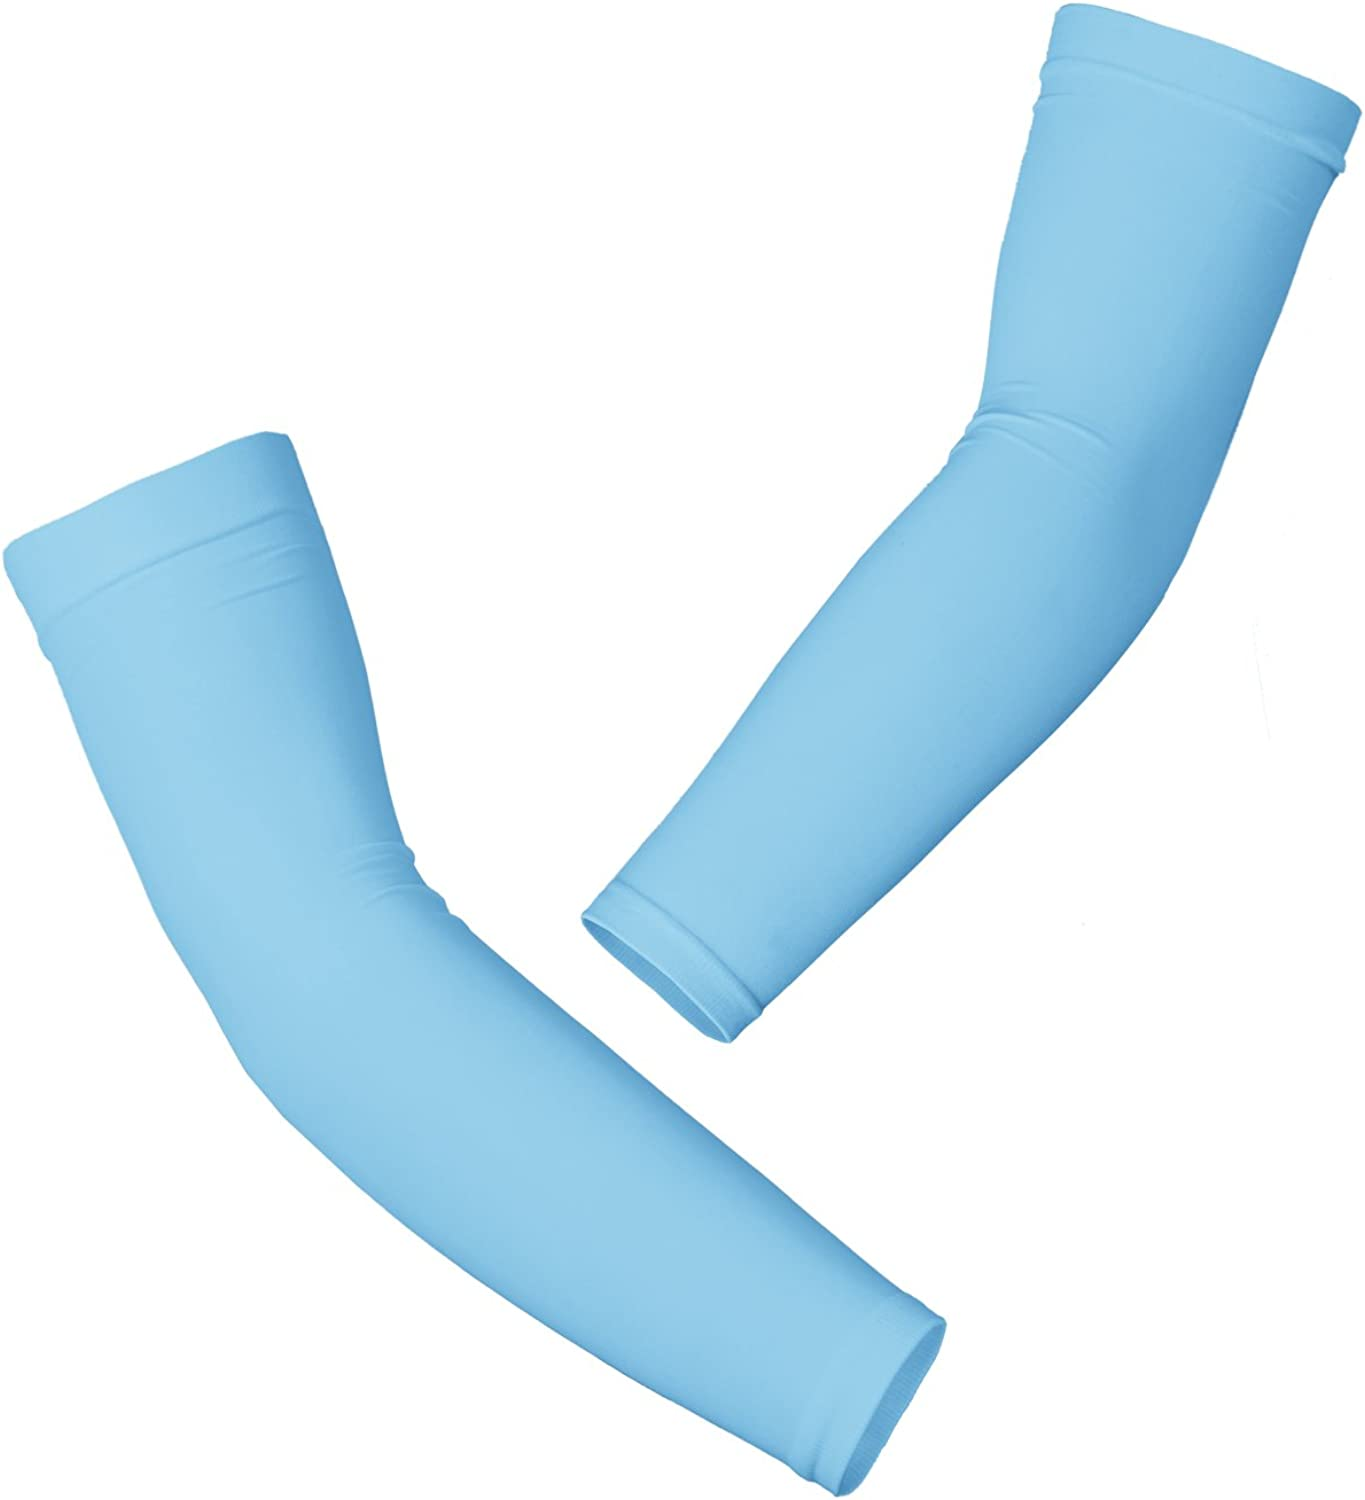 H2H SPORT UV Cover Protection Arm Sleeves Cycling Armwarmers Compression Sleeves